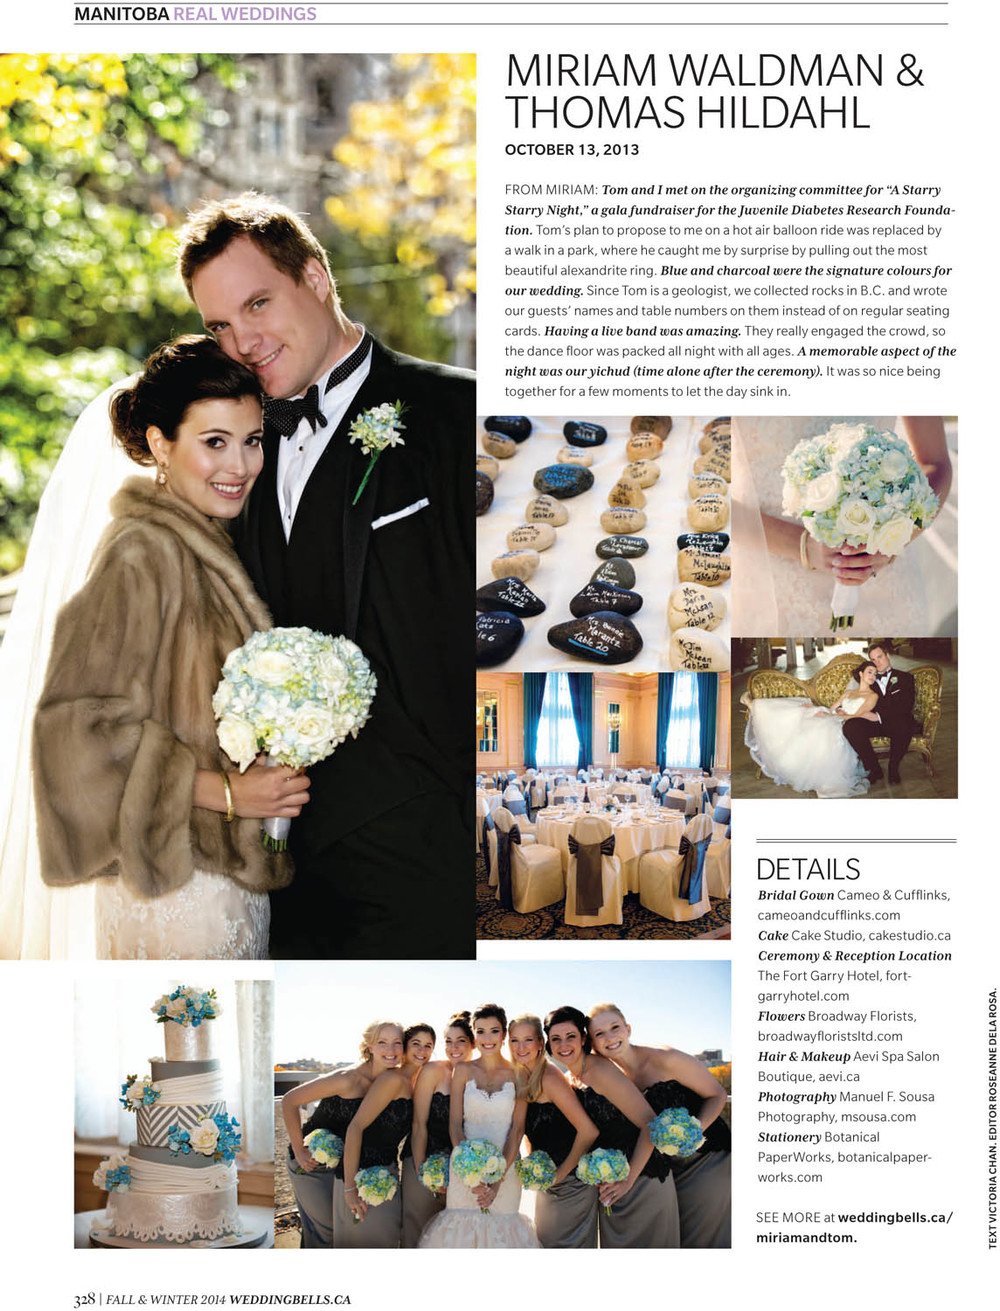 These are the images and story that they chose from Miriam and Tom's wedding here in Winnipeg.